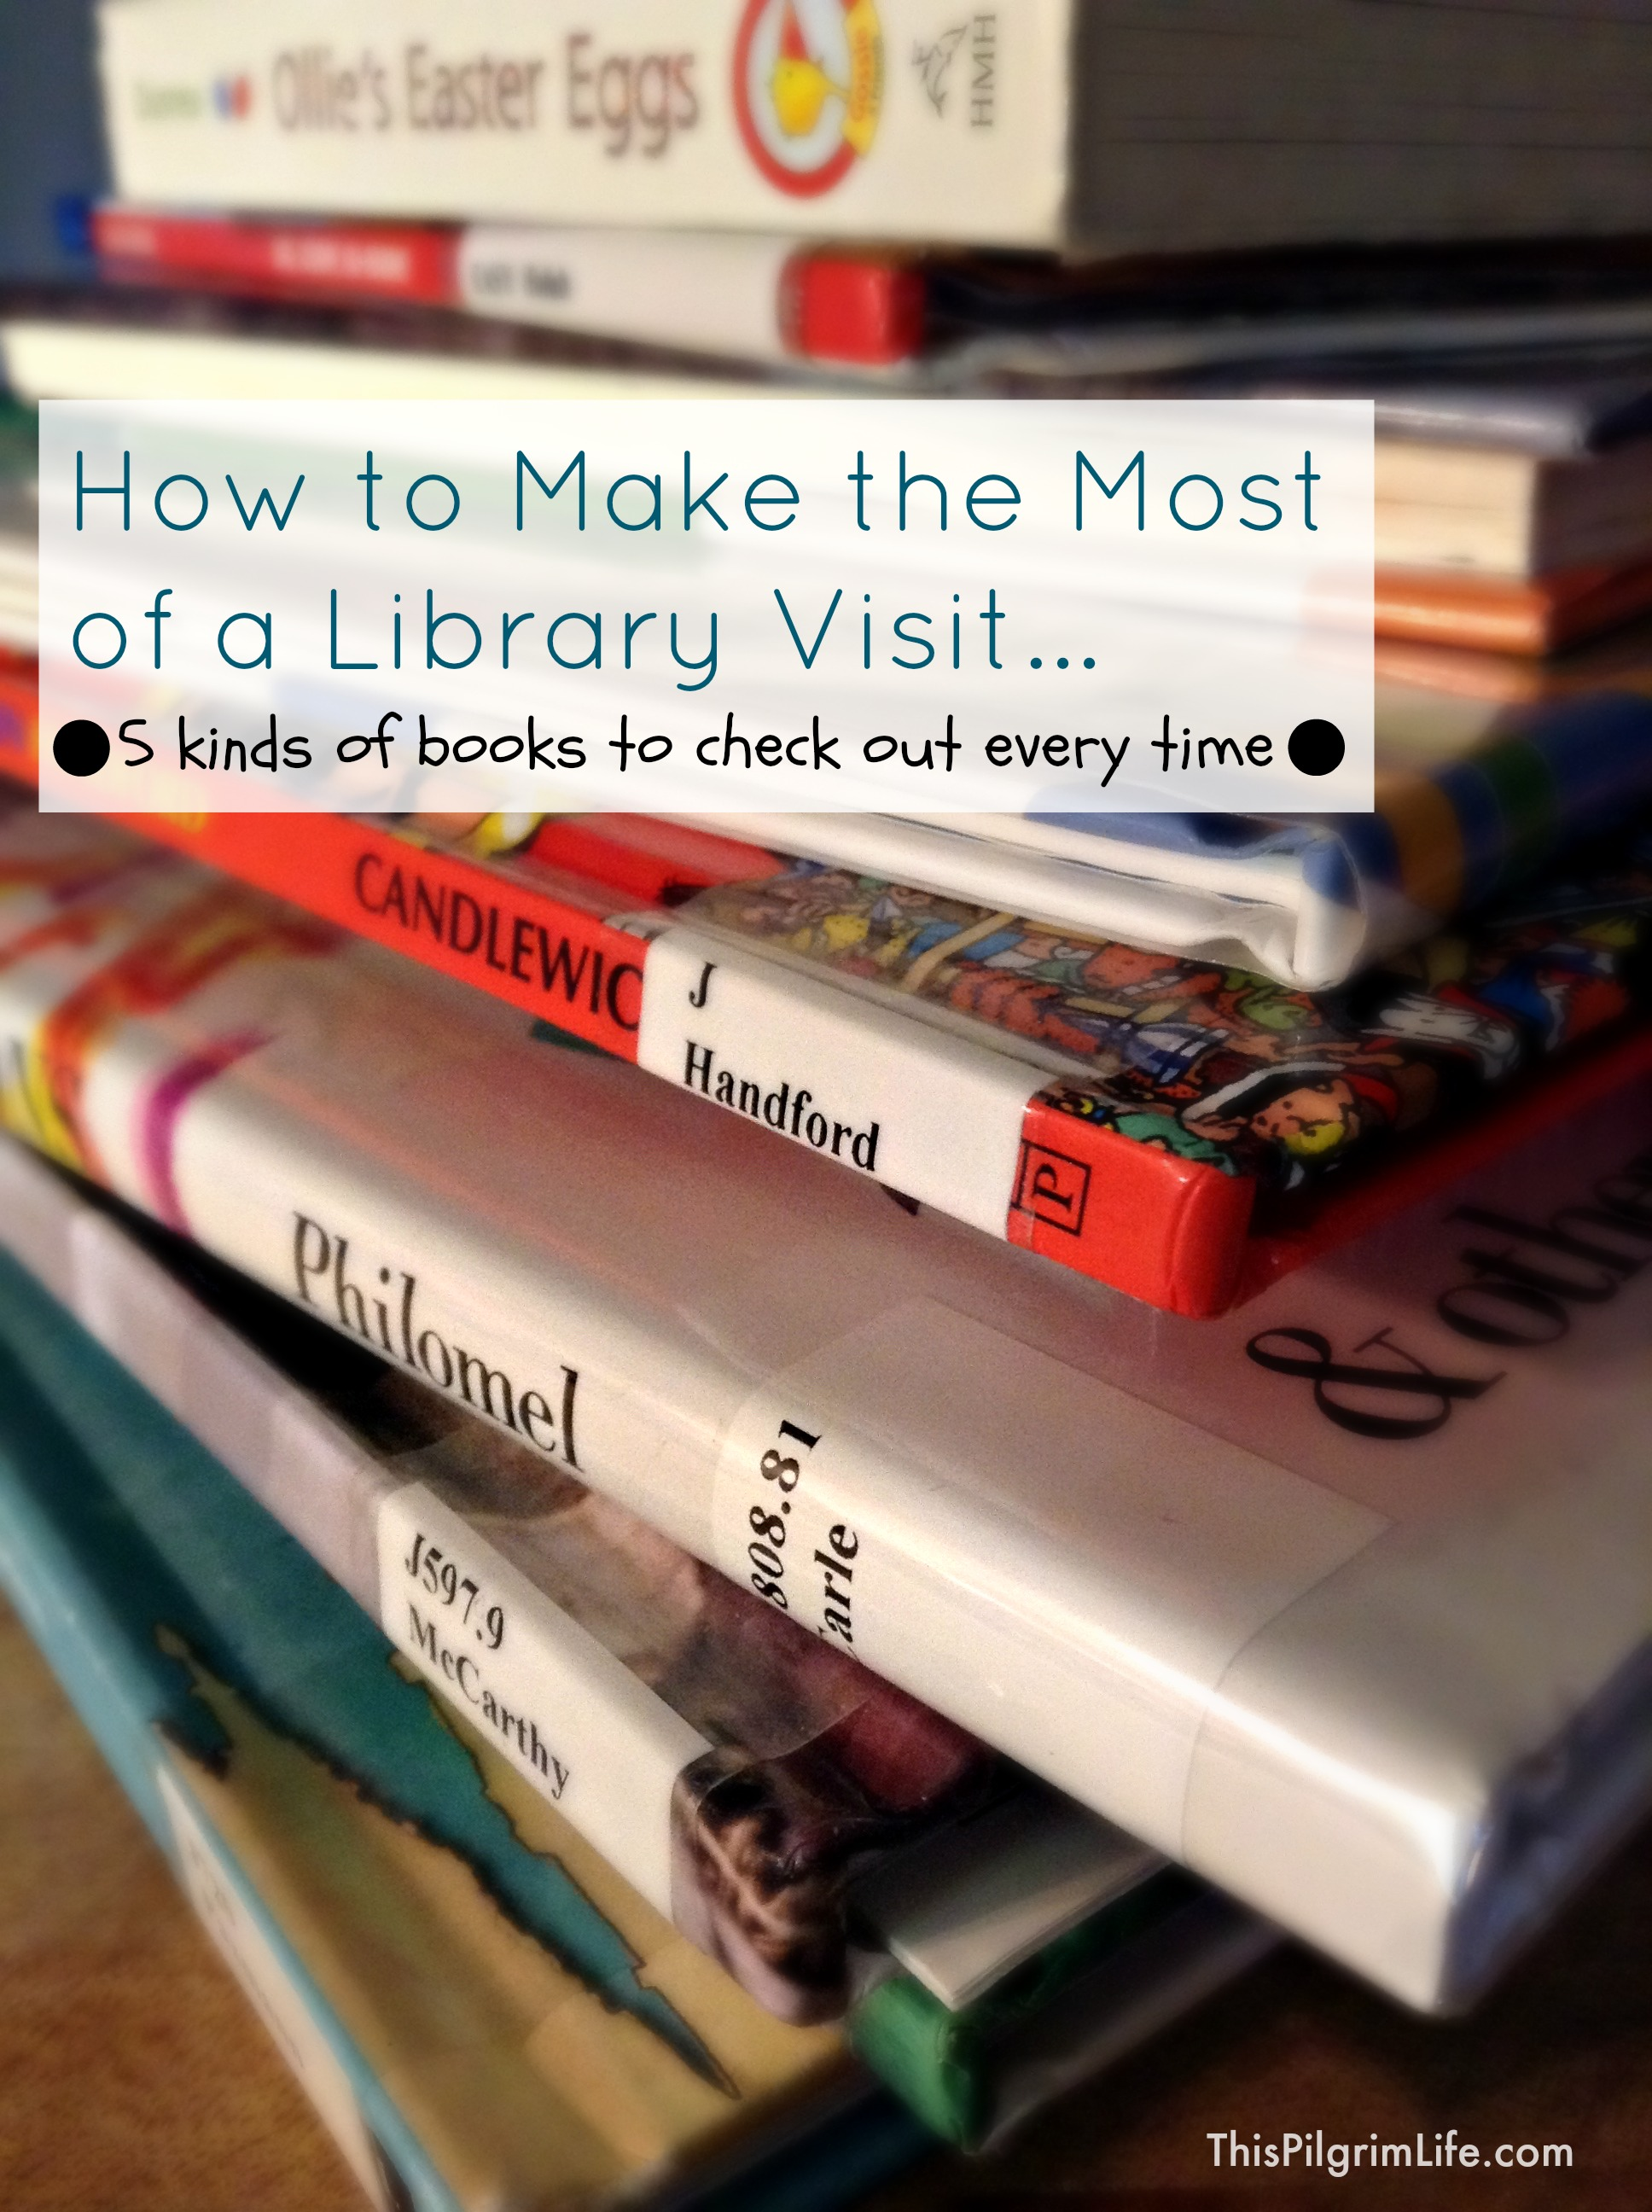 How to Make the Most of a Library Visit: 5 Kinds of Books to Check Out Every Time